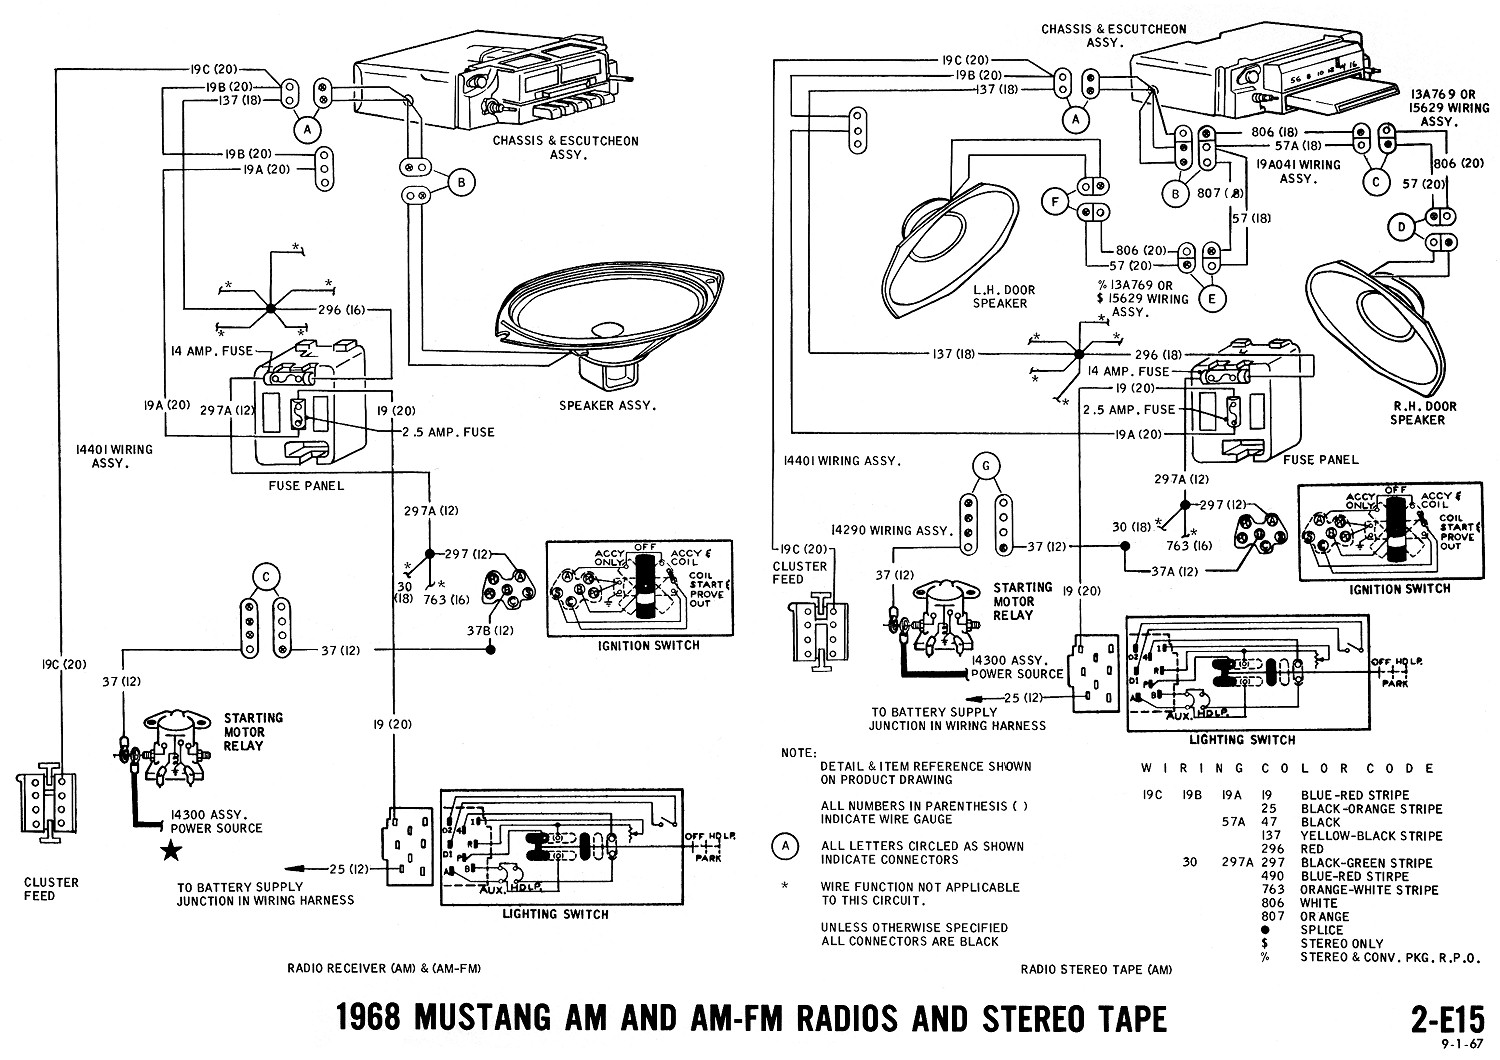 E15 66 mustang wiring diagram radio tape 66 mustang turn signal wiring 2000 ford mustang radio wiring harness at soozxer.org